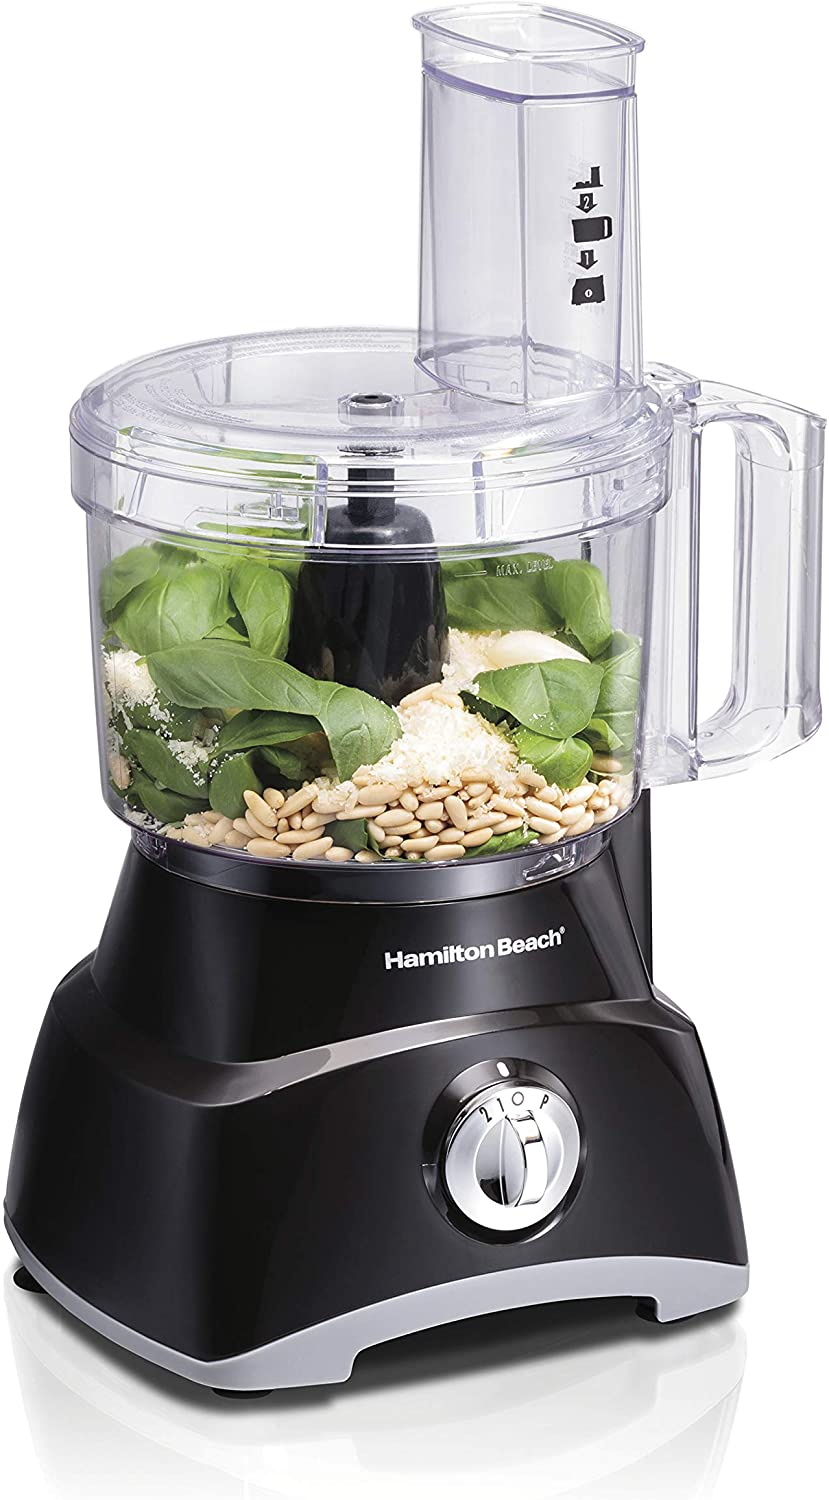 Hamilton Beach 8-Cup Compact Food Processor & Vegetable Chopper for Slicing, Dicing, Mincing, and puree